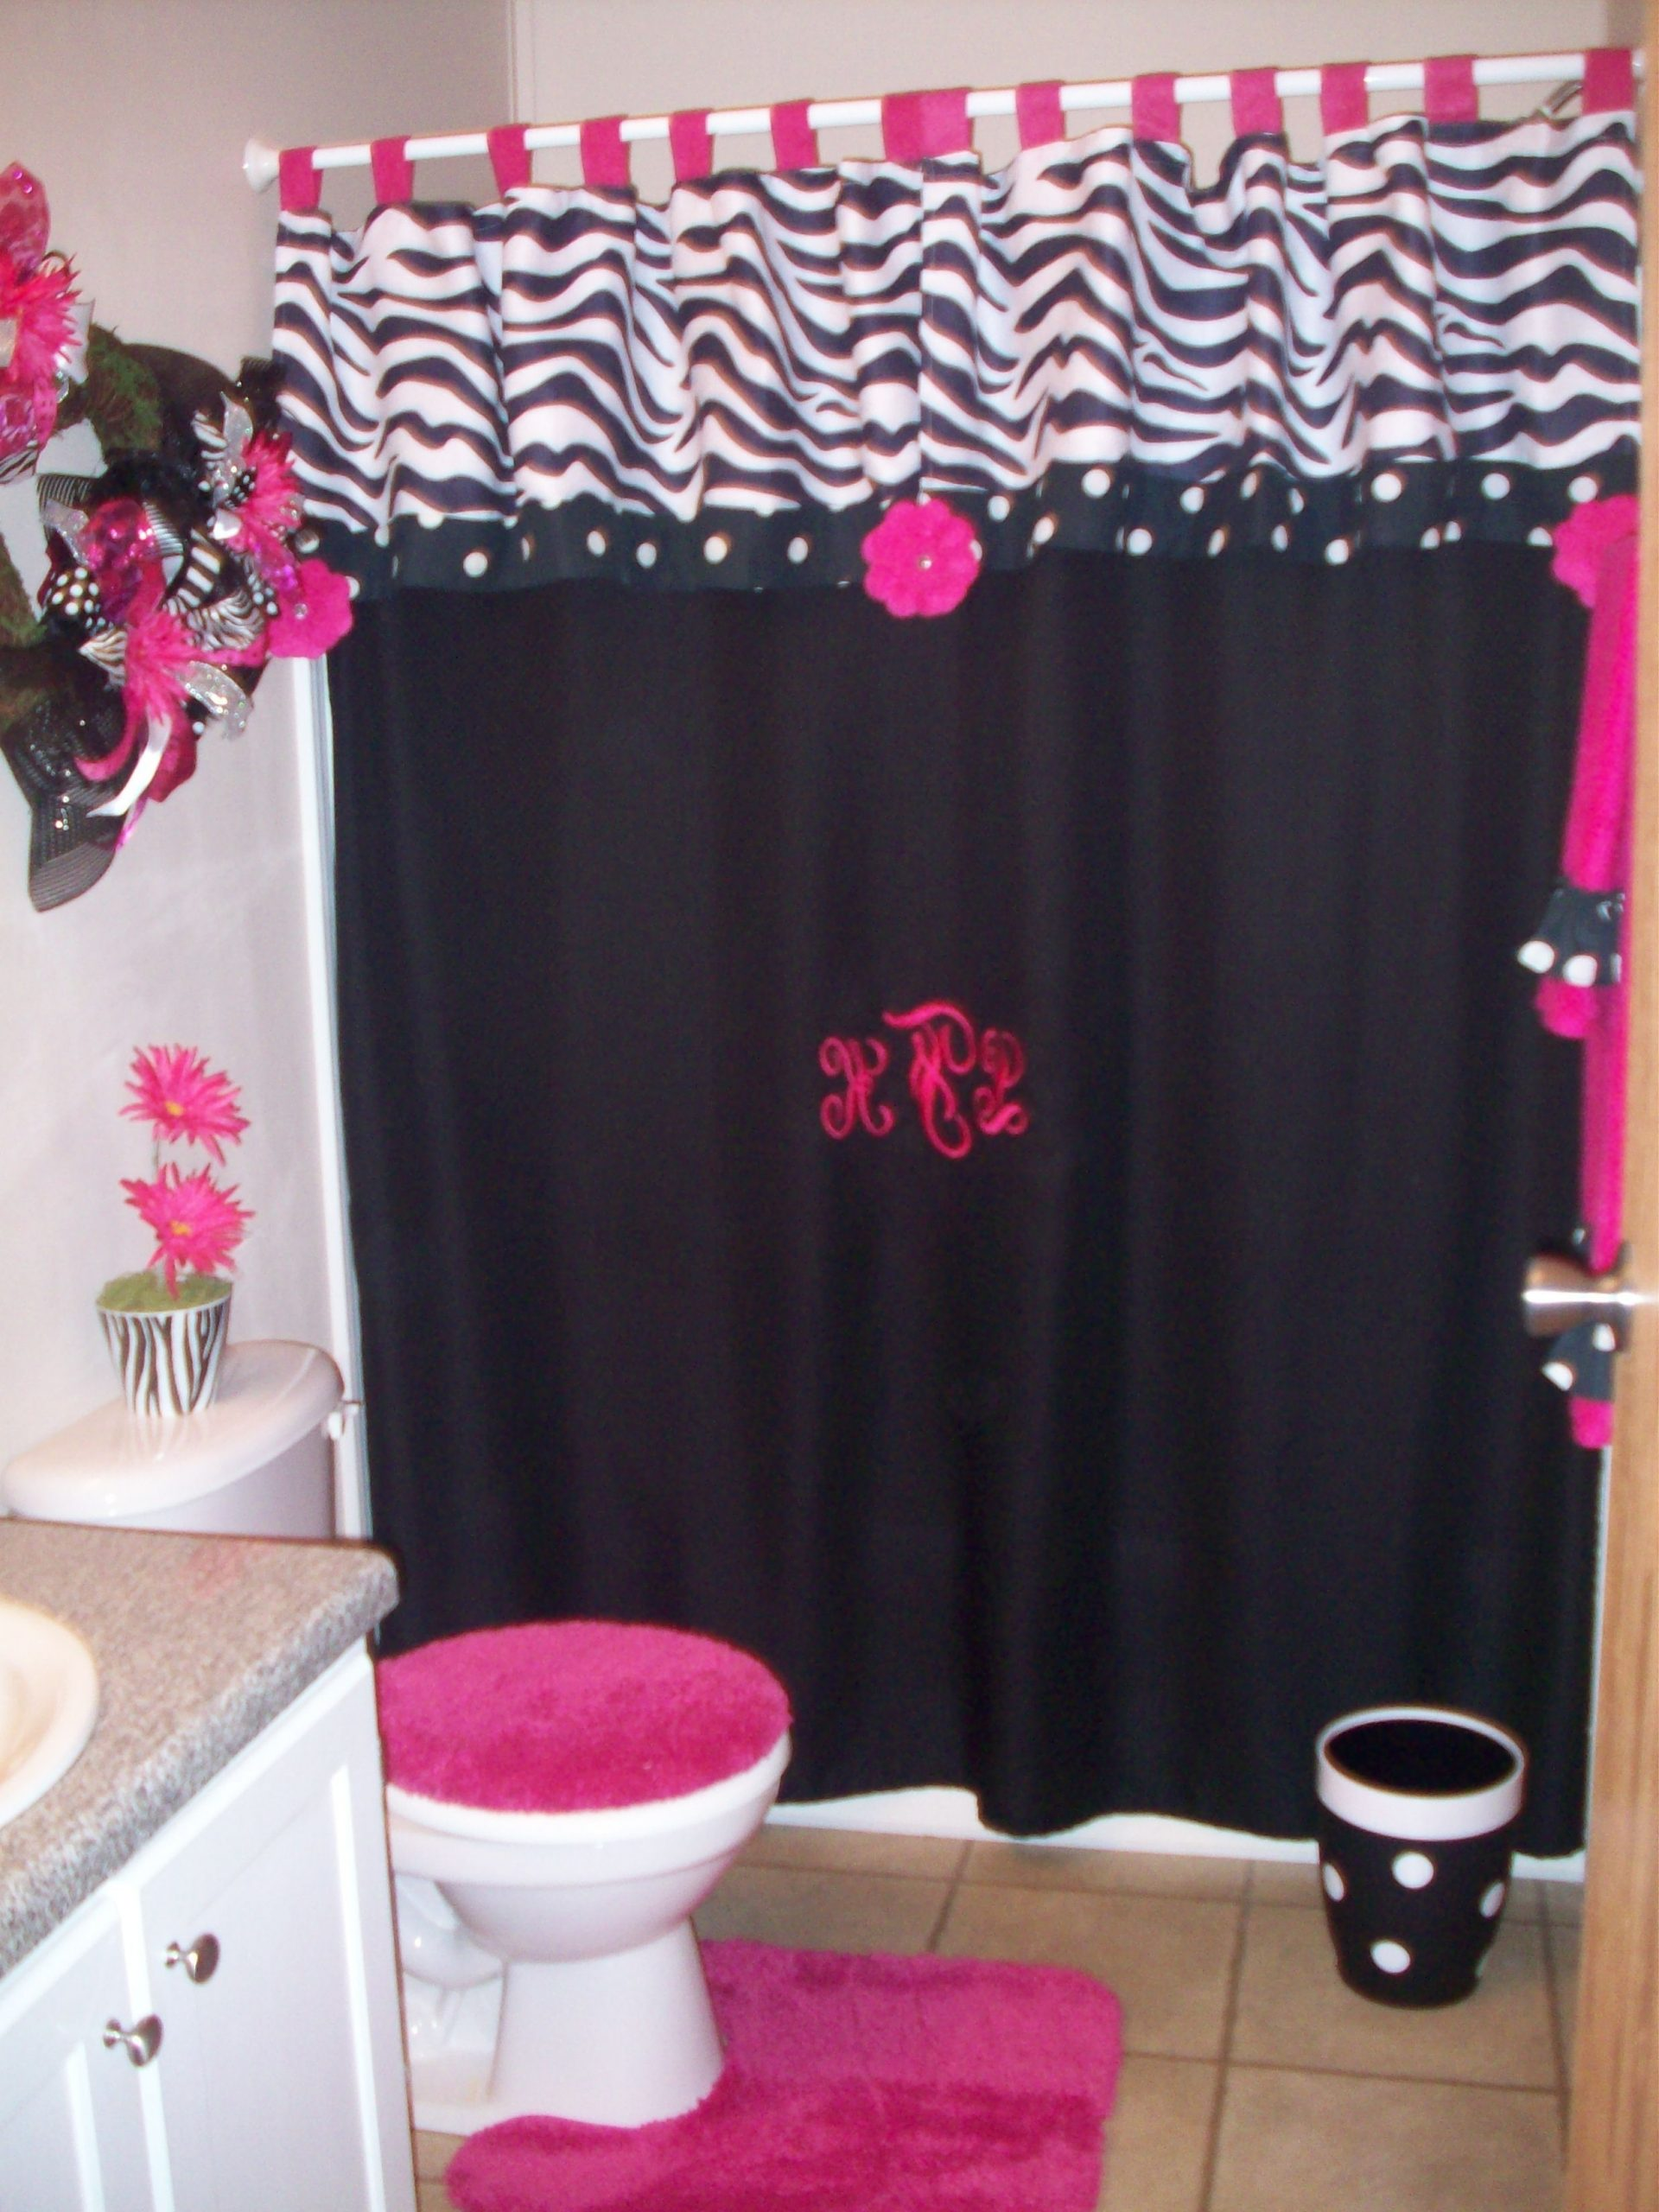 A Little Too Much For Me But Would Tie In Perfectly For The Zebra Bathroom Decorating